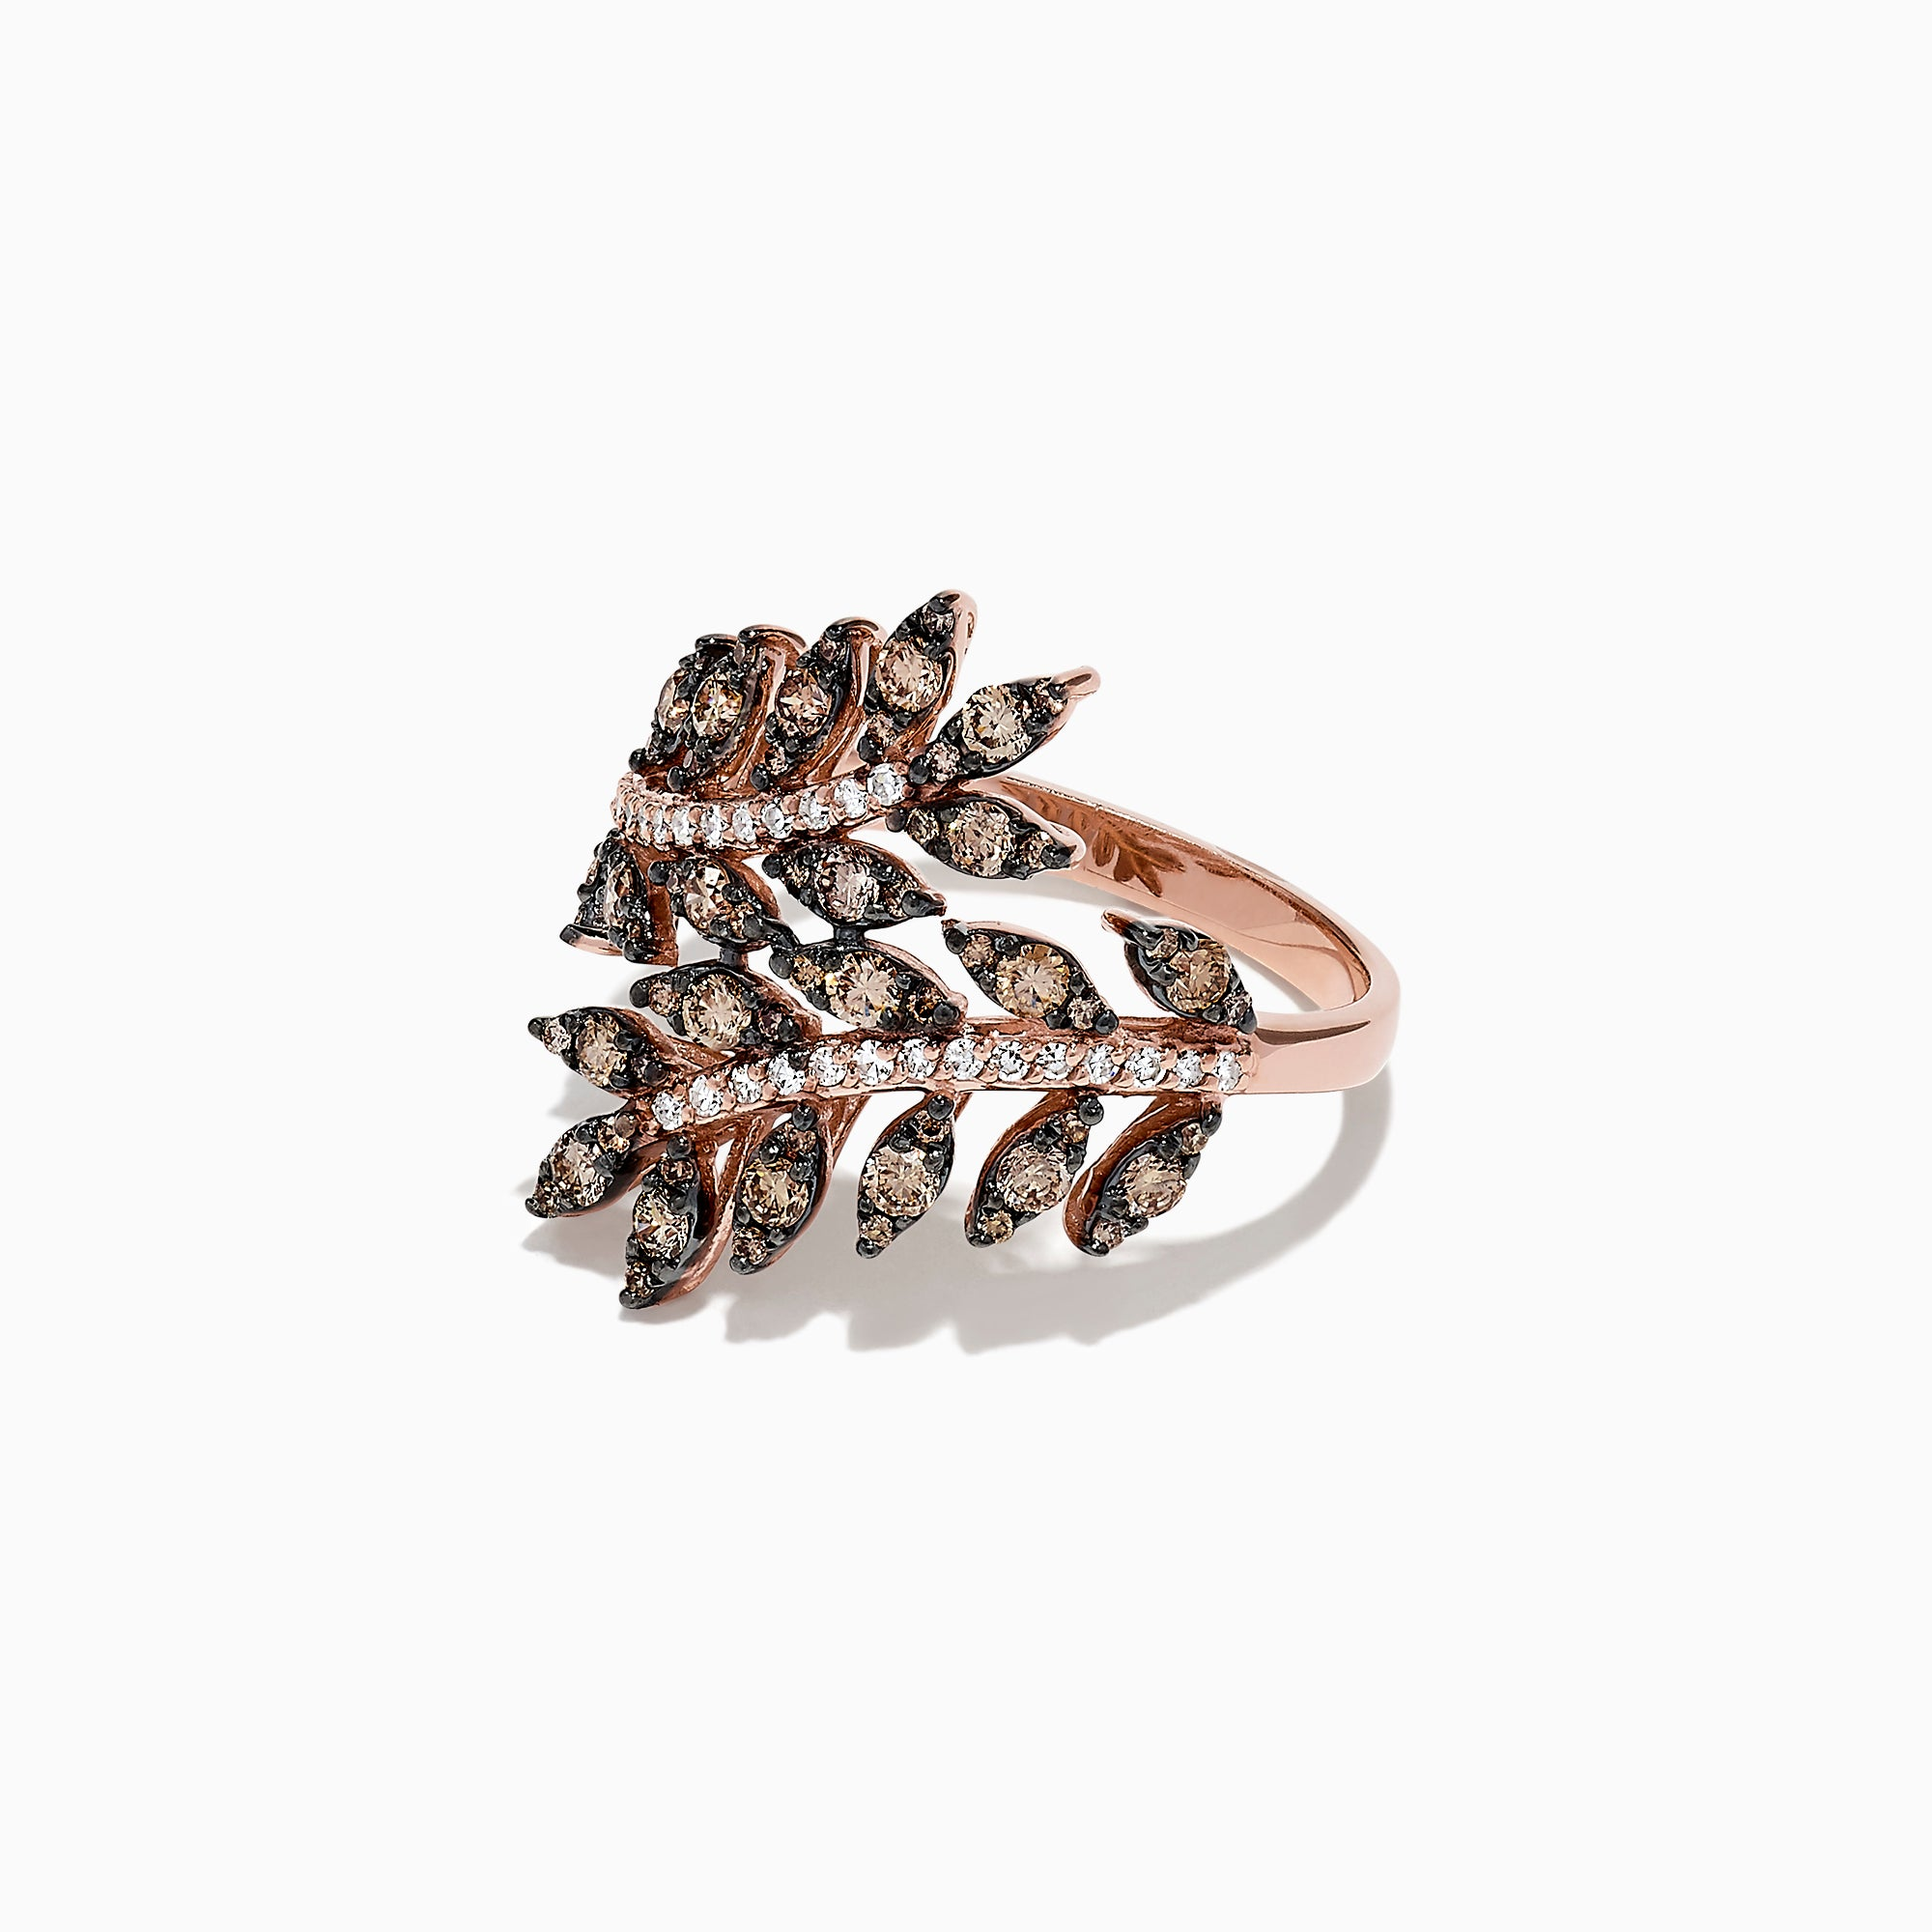 Effy 14K Rose Gold Espresso and White Diamond Wrapped Leaf Ring, 0.92 TCW